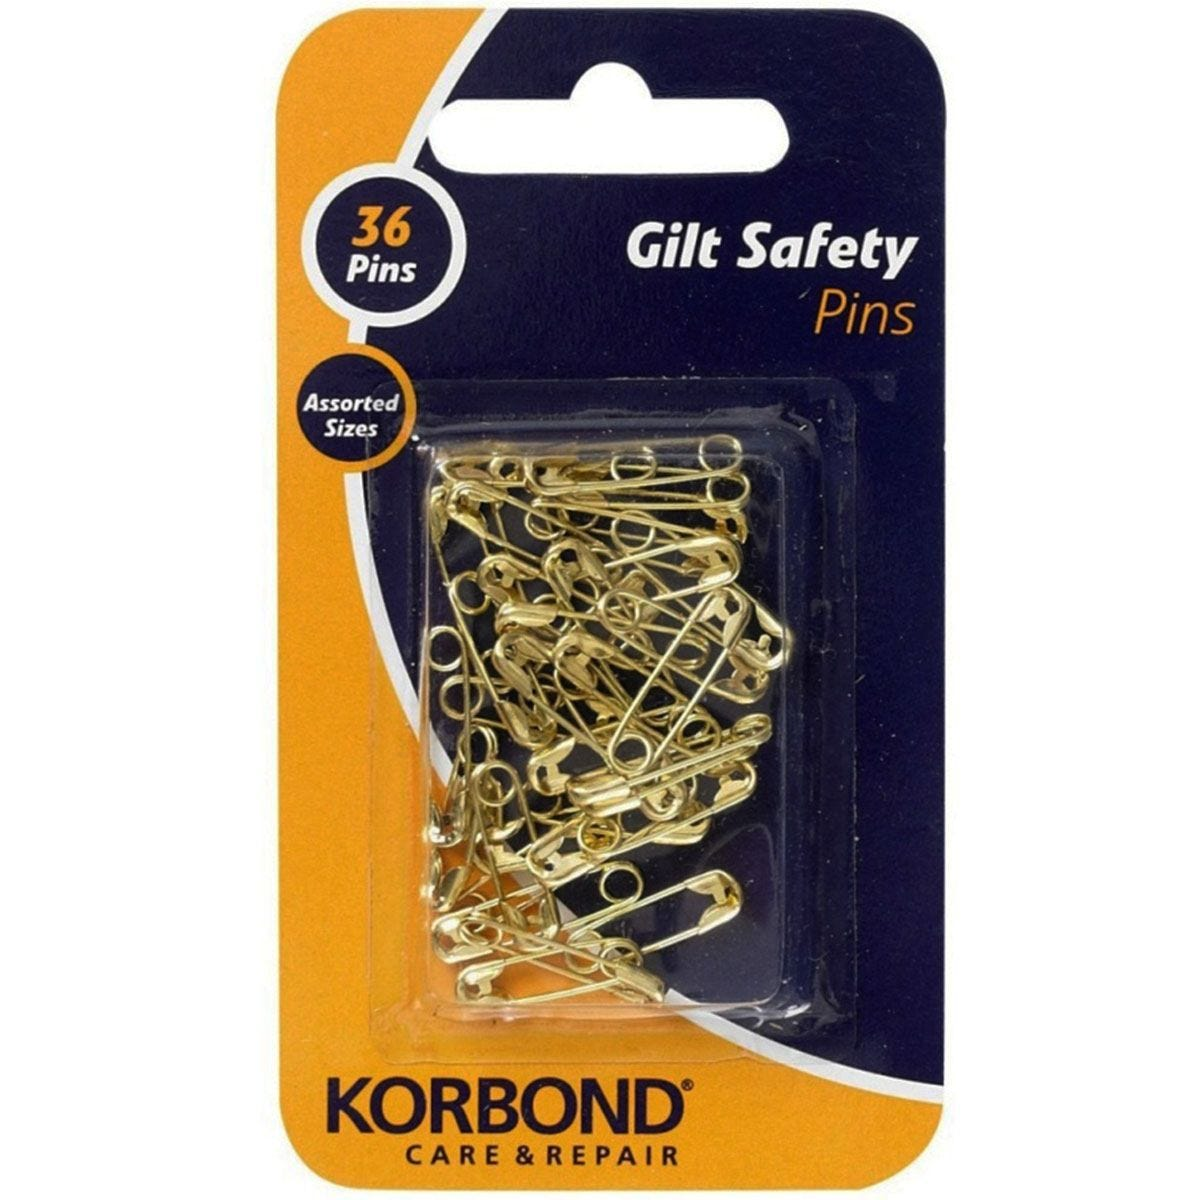 Korbond Gilted Safety Pins